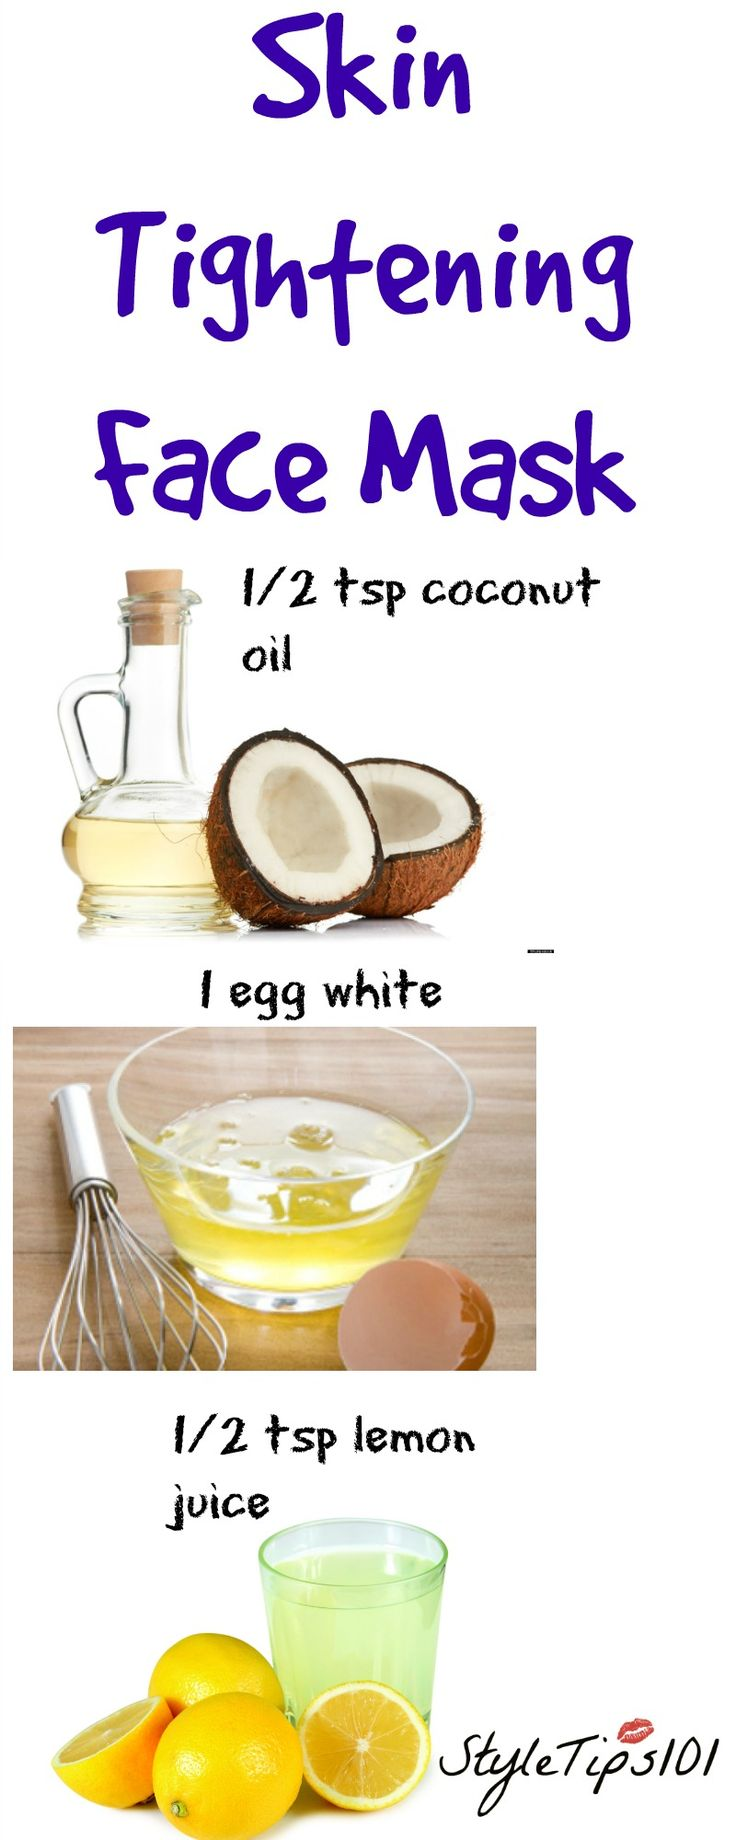 This skin tightening face mask does WONDERS for oily, acne-prone, and aging skin. It's so easy to whip up because all you need are 3 ingredients you probably already have in your pantry! This skin tightening face mask uses coconut oil, egg whites, and lemon juice. Coconut oil soothes the skin, egg whites tighten, and… Read More »